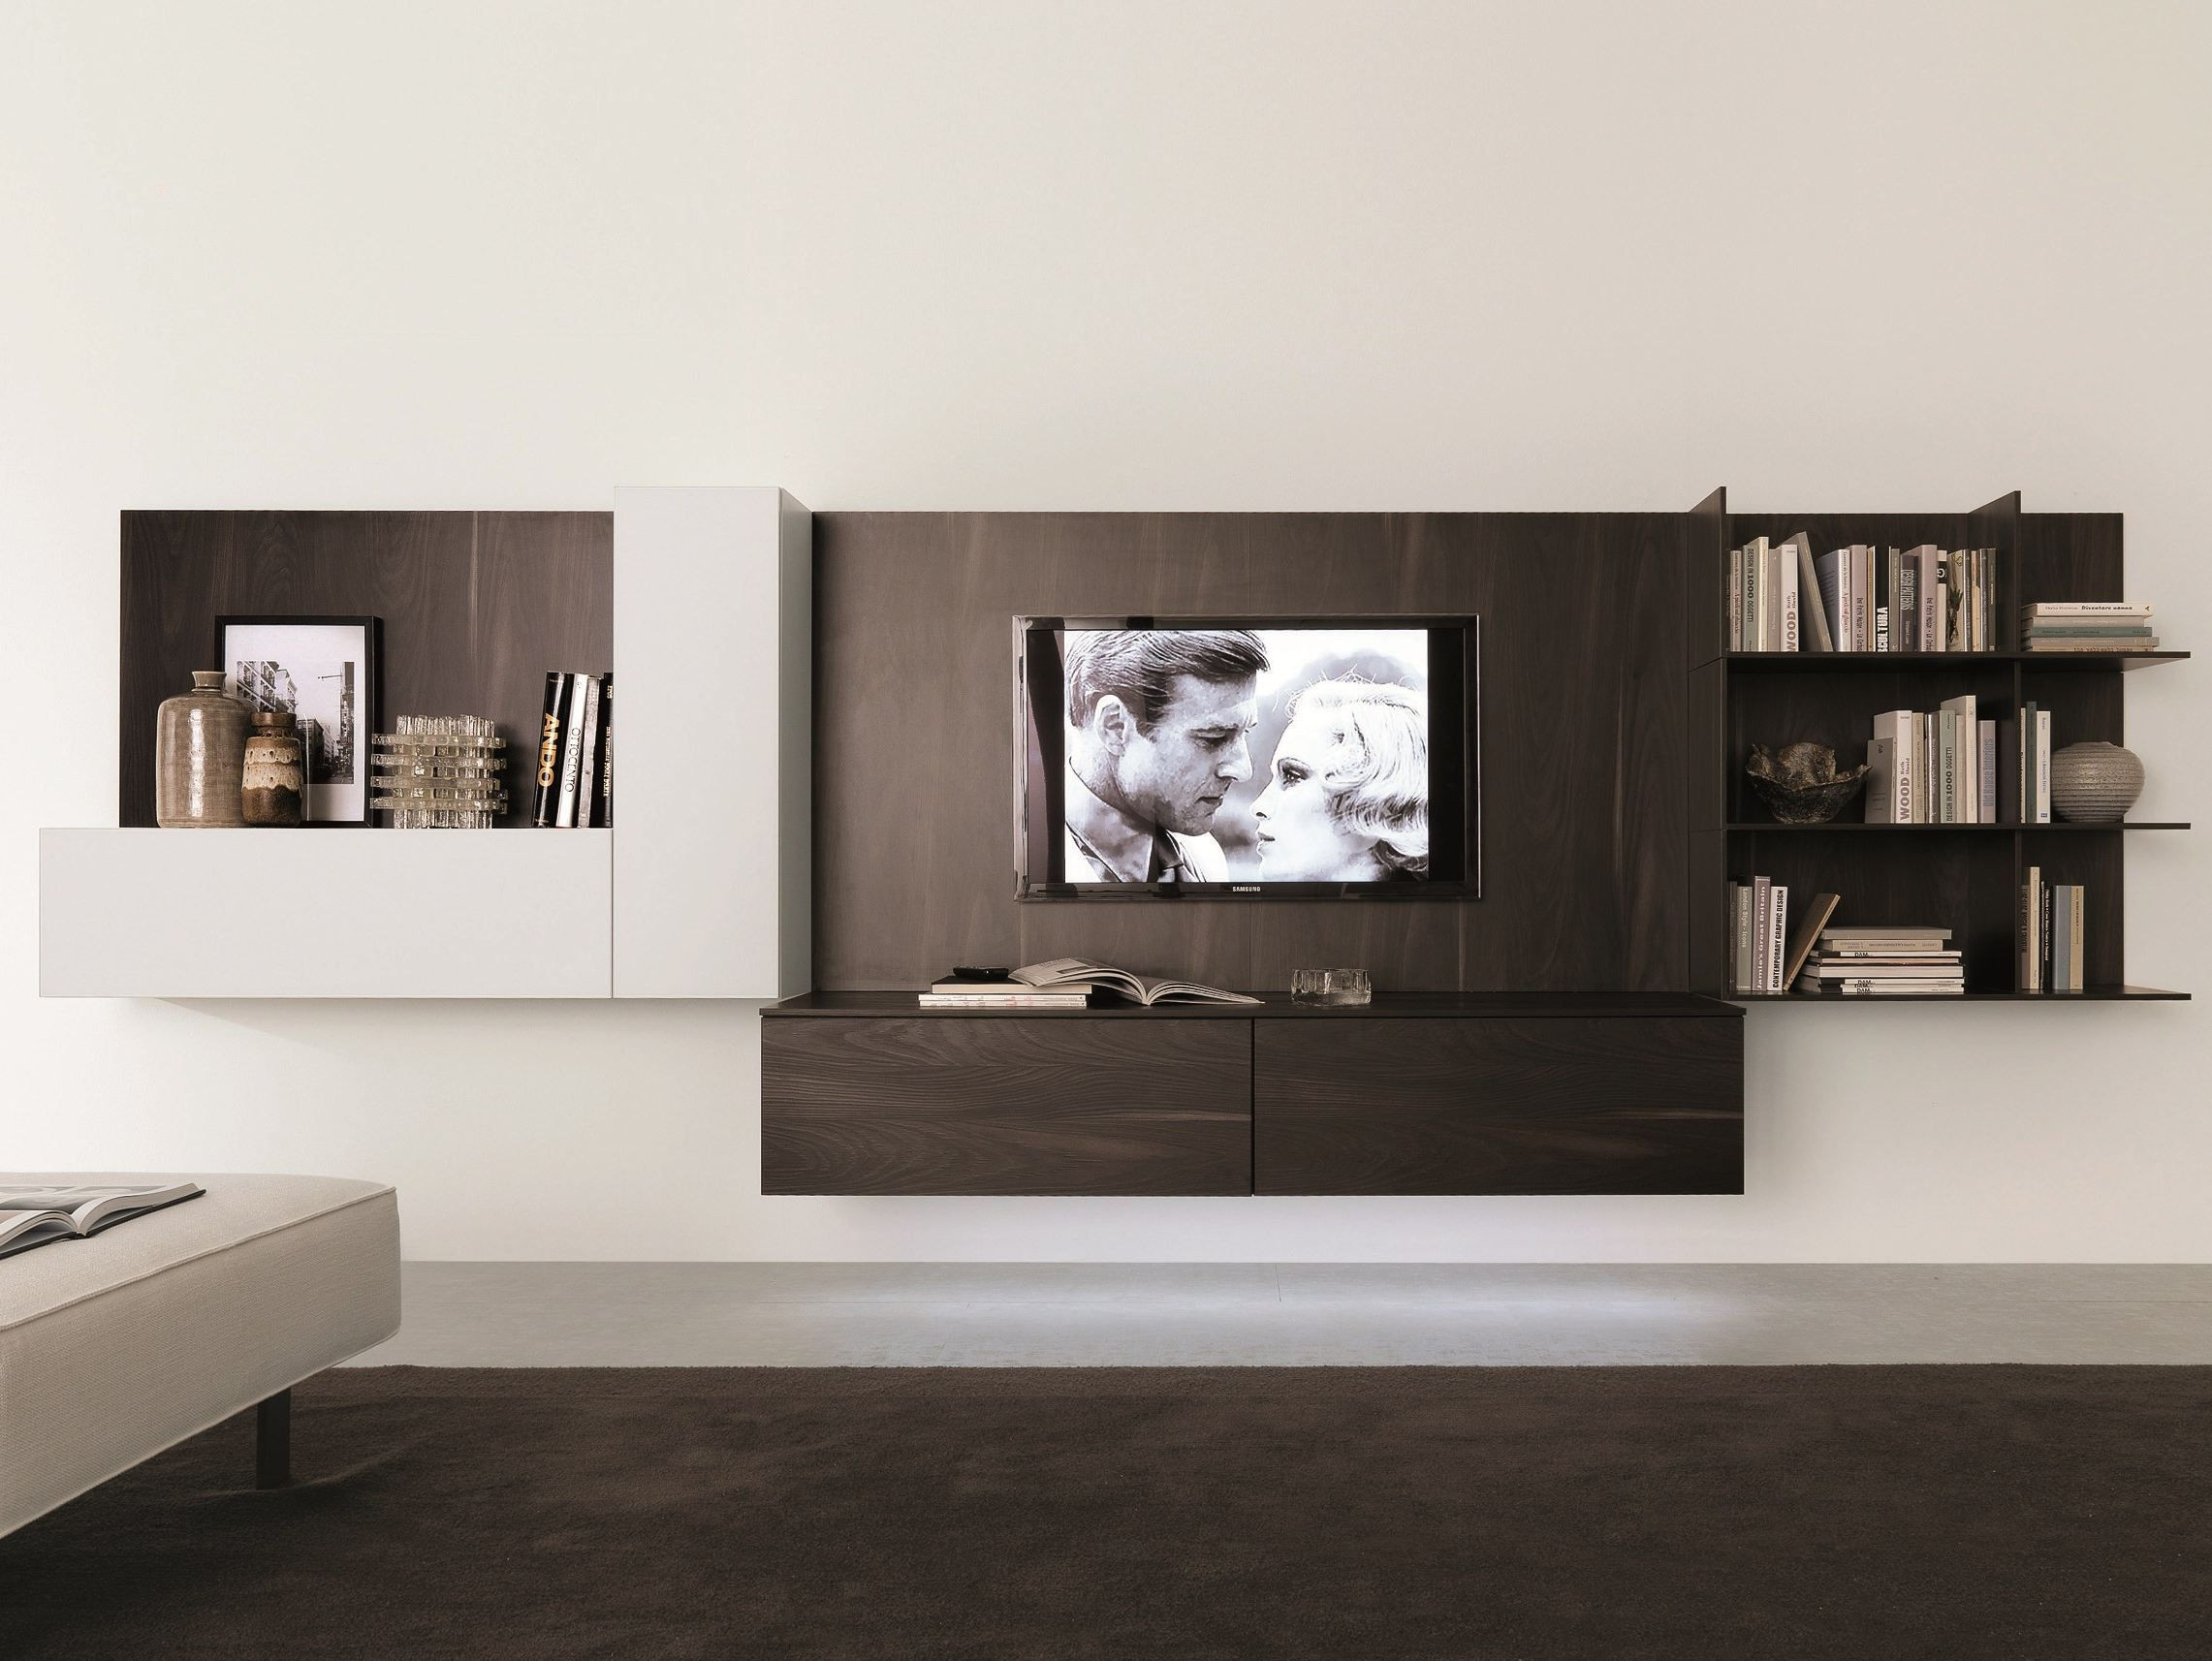 Muebles Para Tv Modernos Gran Muebles Modernos Para Tv Y Equipo De sonido Of Muebles Para Tv Modernos Contemporáneo 1000 Ideas About Tv Rack On Pinterest